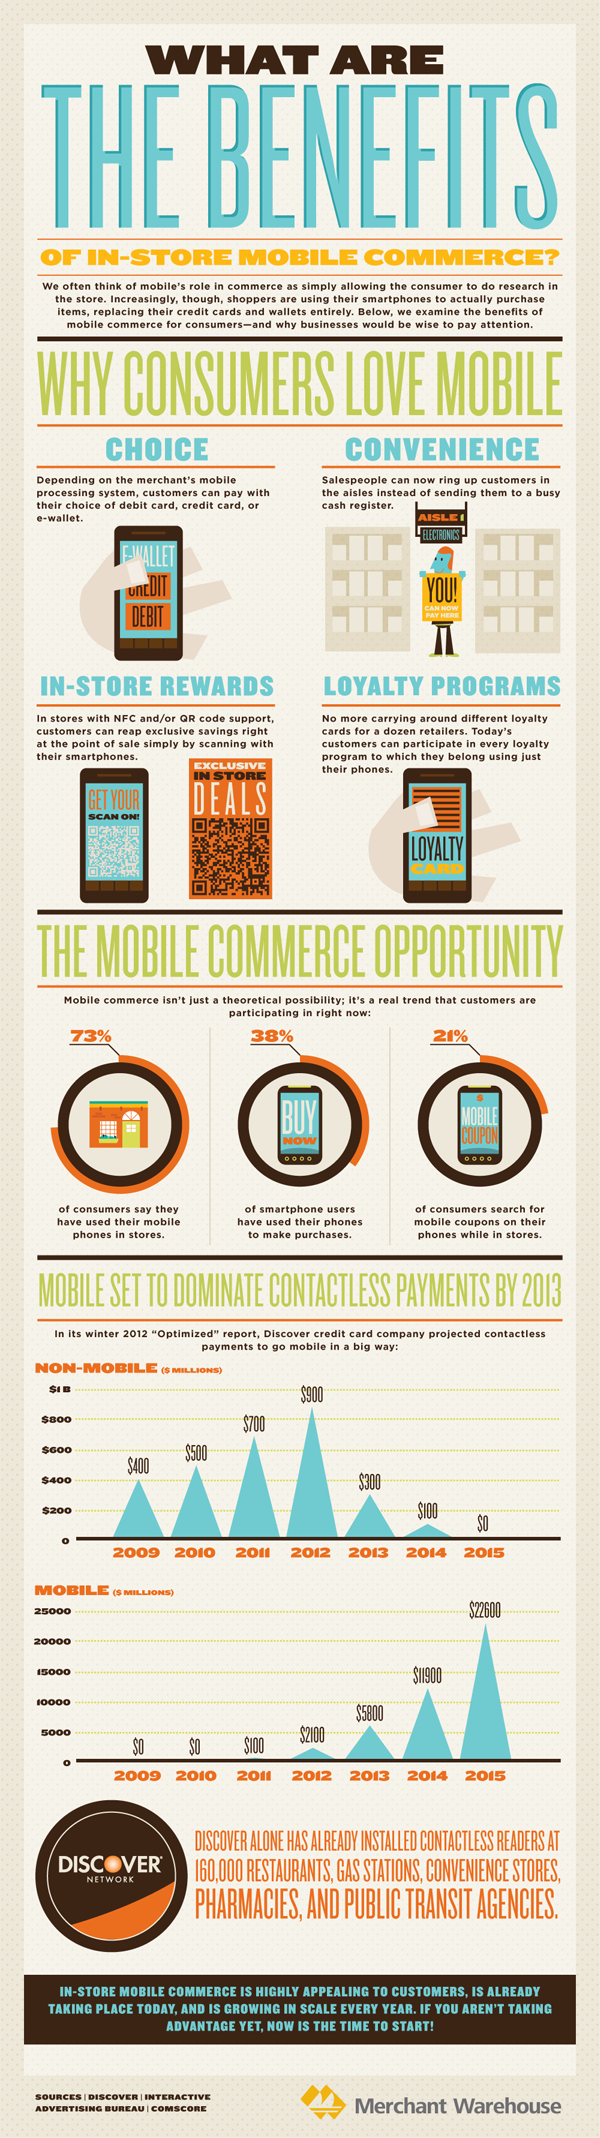 Benefits-of-mobile-commerce